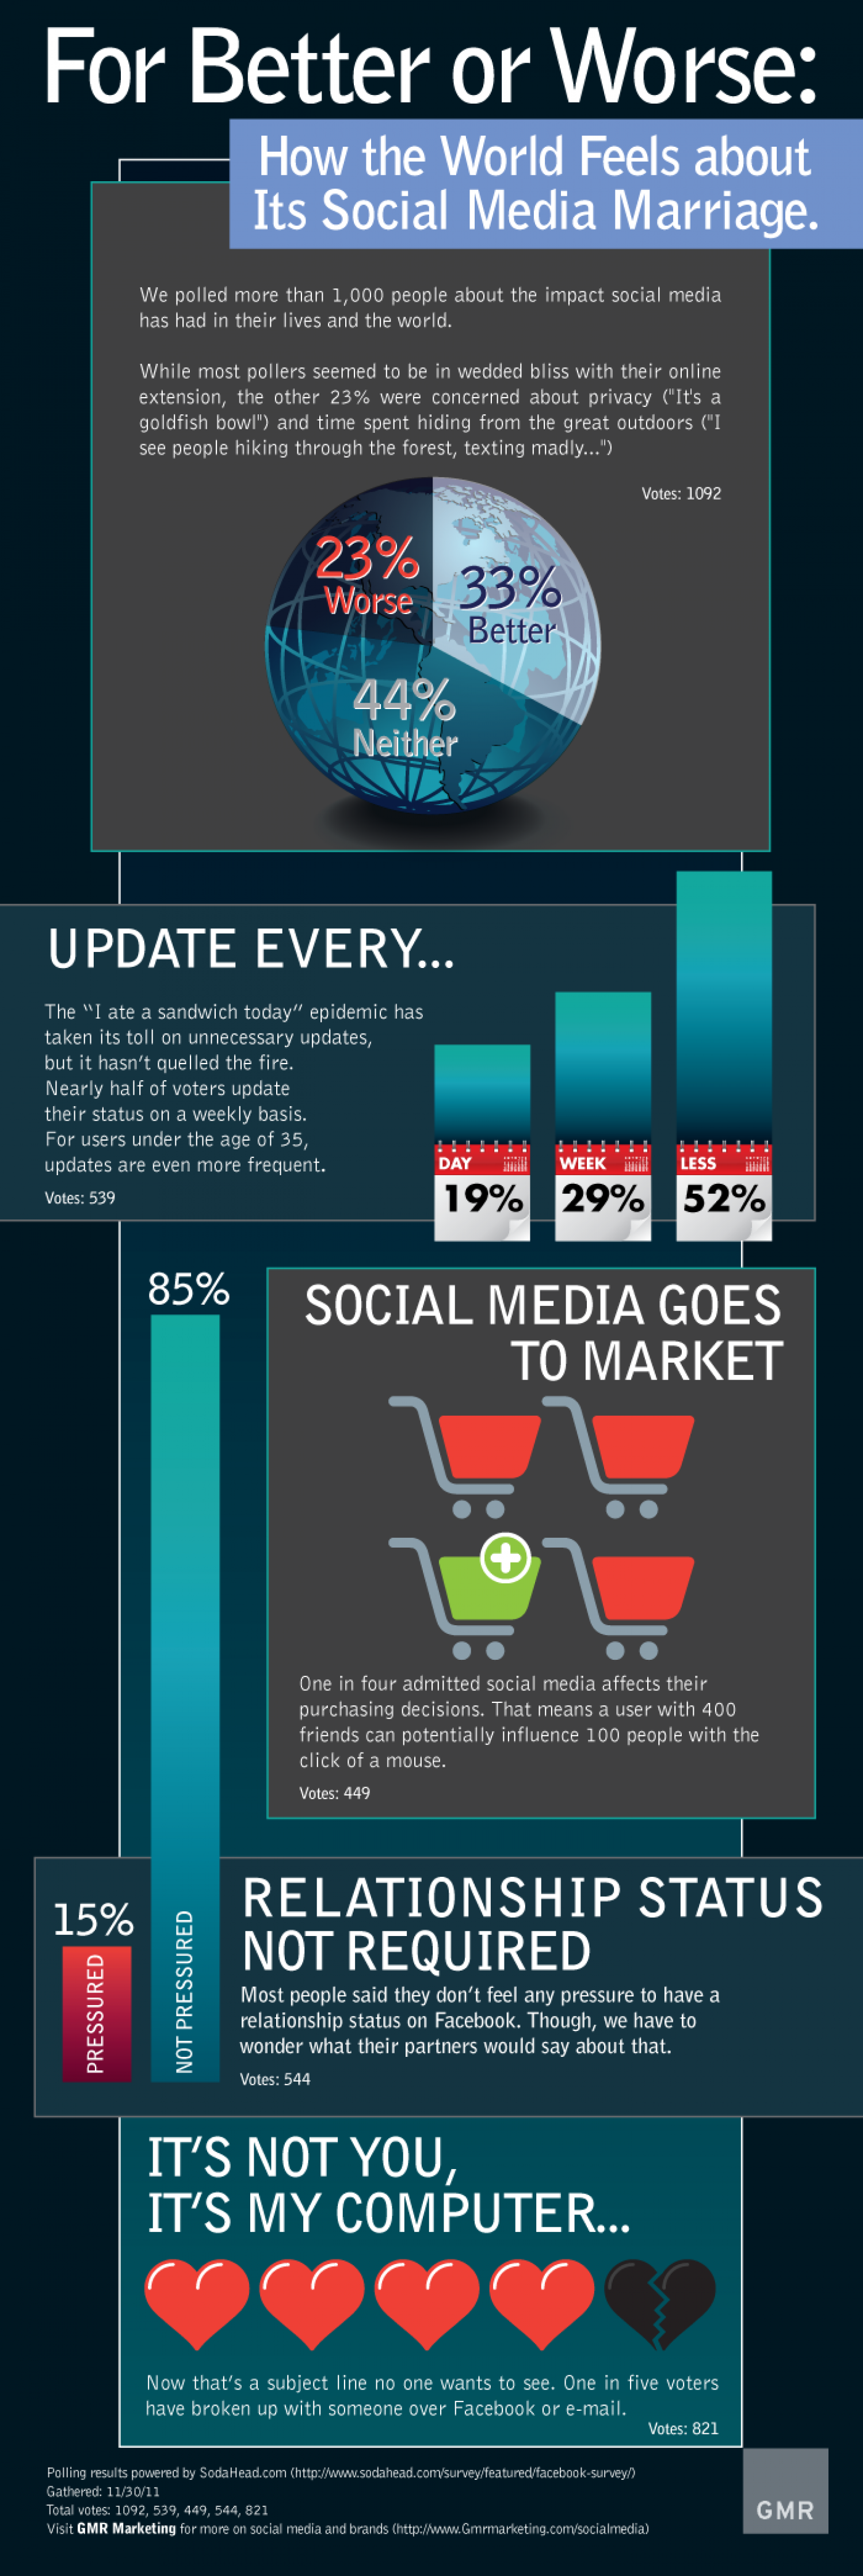 For Better or Worse: The Social Media Marriage Infographic